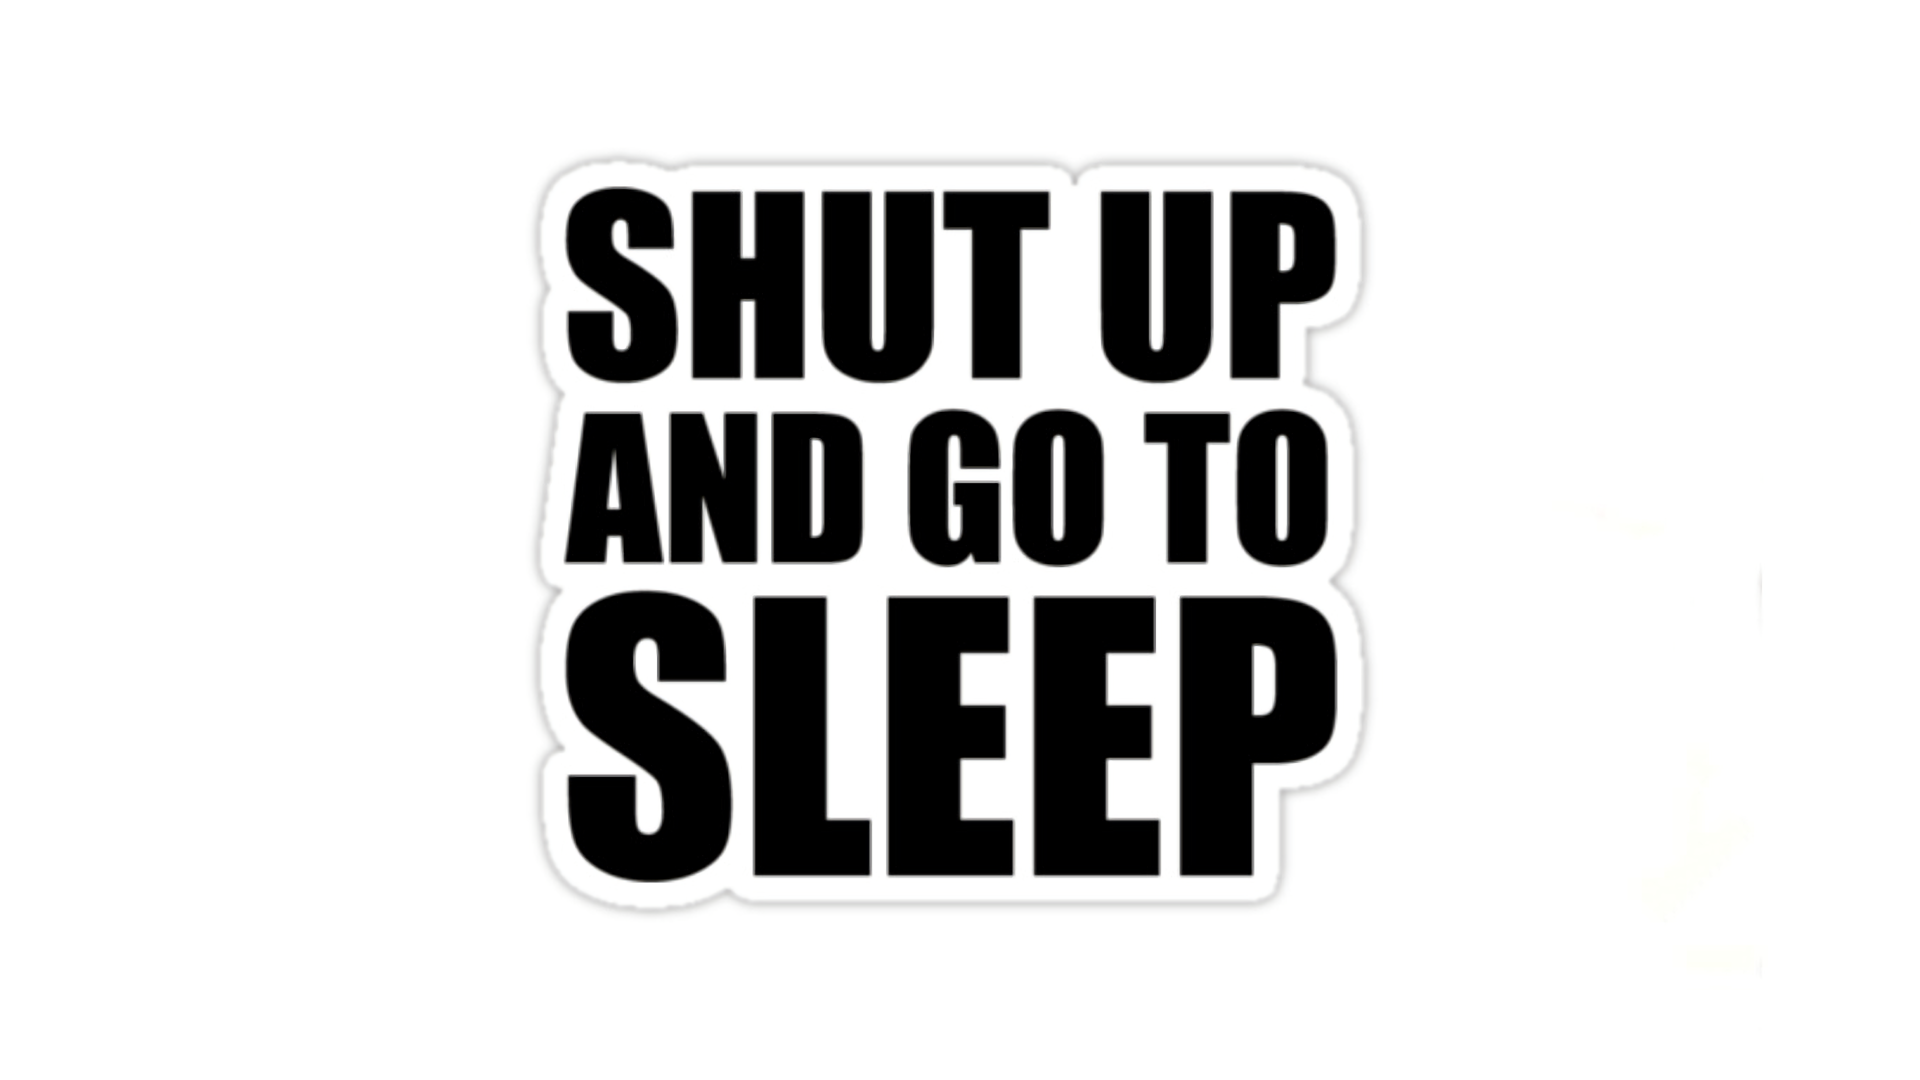 1920x1080 Shut Up And Go To Sleep HD Wallpaper   Background Image ...